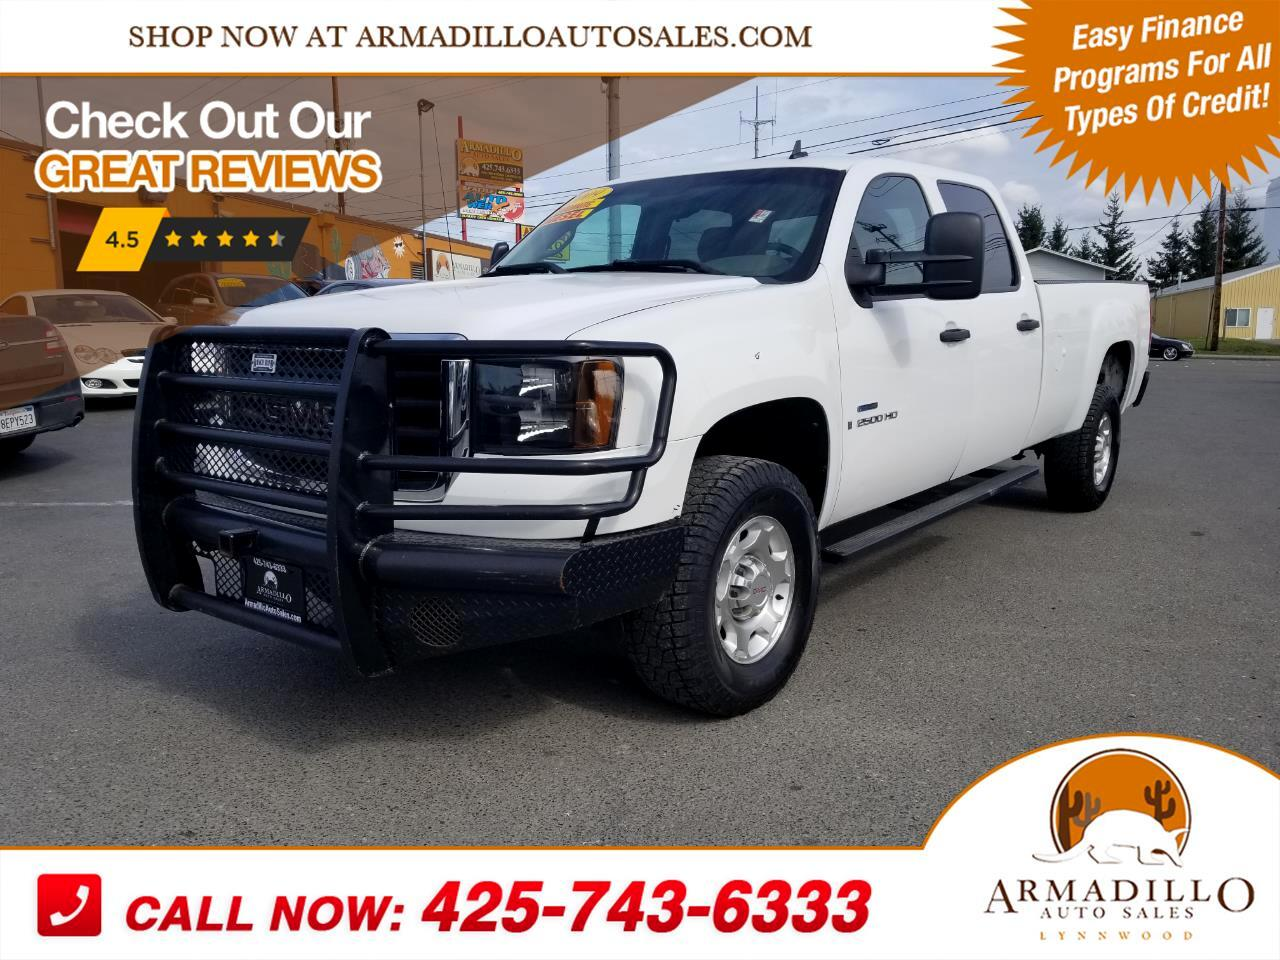 2009 GMC Sierra 2500HD Crew Cab Long Bed 2WD